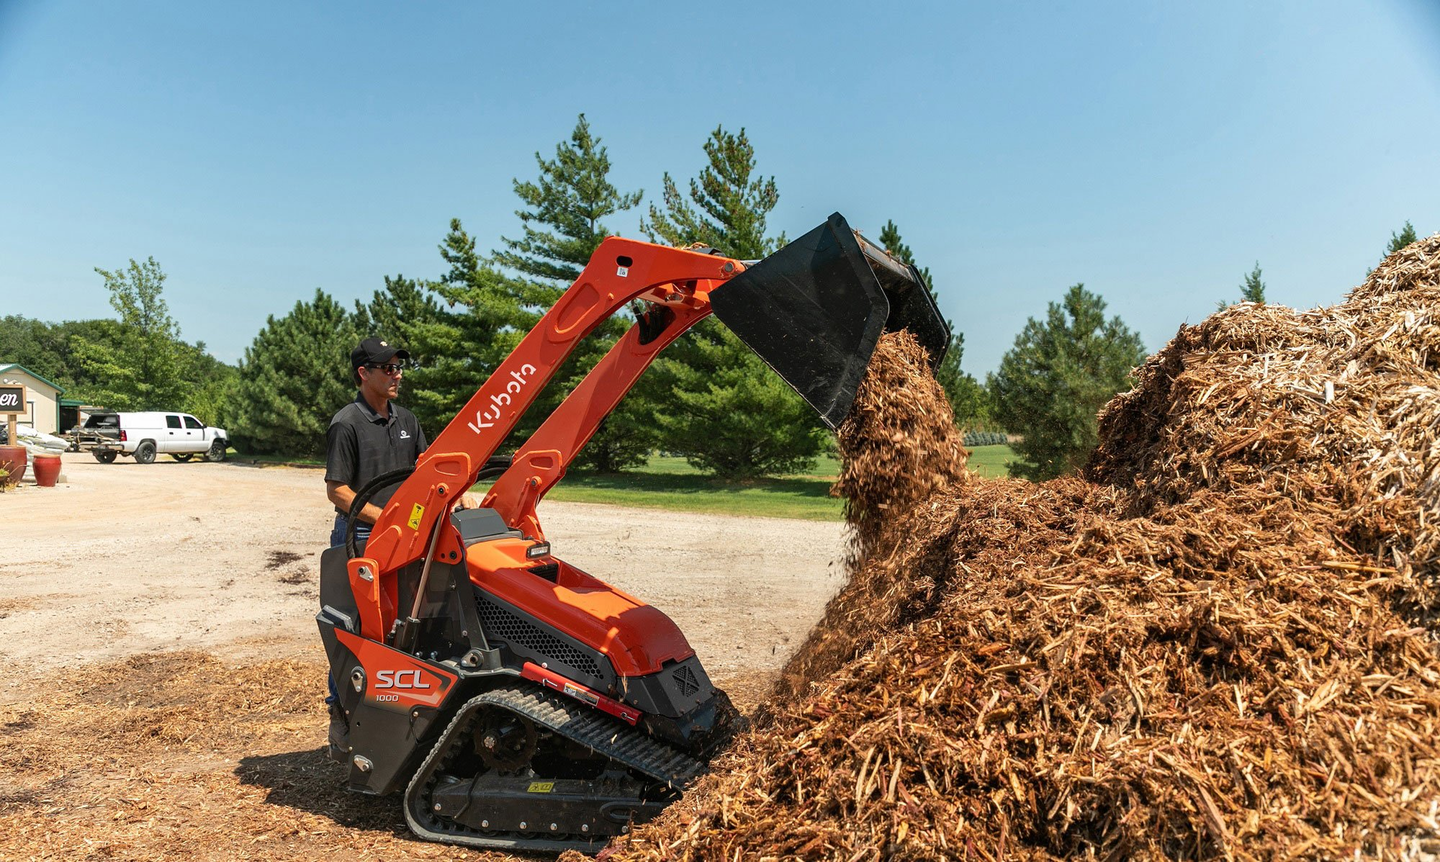 Kubota incorporated many design elements of its compact track loaders in developing its first CUL, the SCL1000. Controls are pilot operated. Standard features include keyless start with passcode protection, 12-volt charging port and a 4.3-inch LCD color dash monitor. Push-button control of auxiliary hydraulics is built into the loader control handle. Cushioned loader boom cylinders and an adjustable platform suspension system enhance operator comfort.